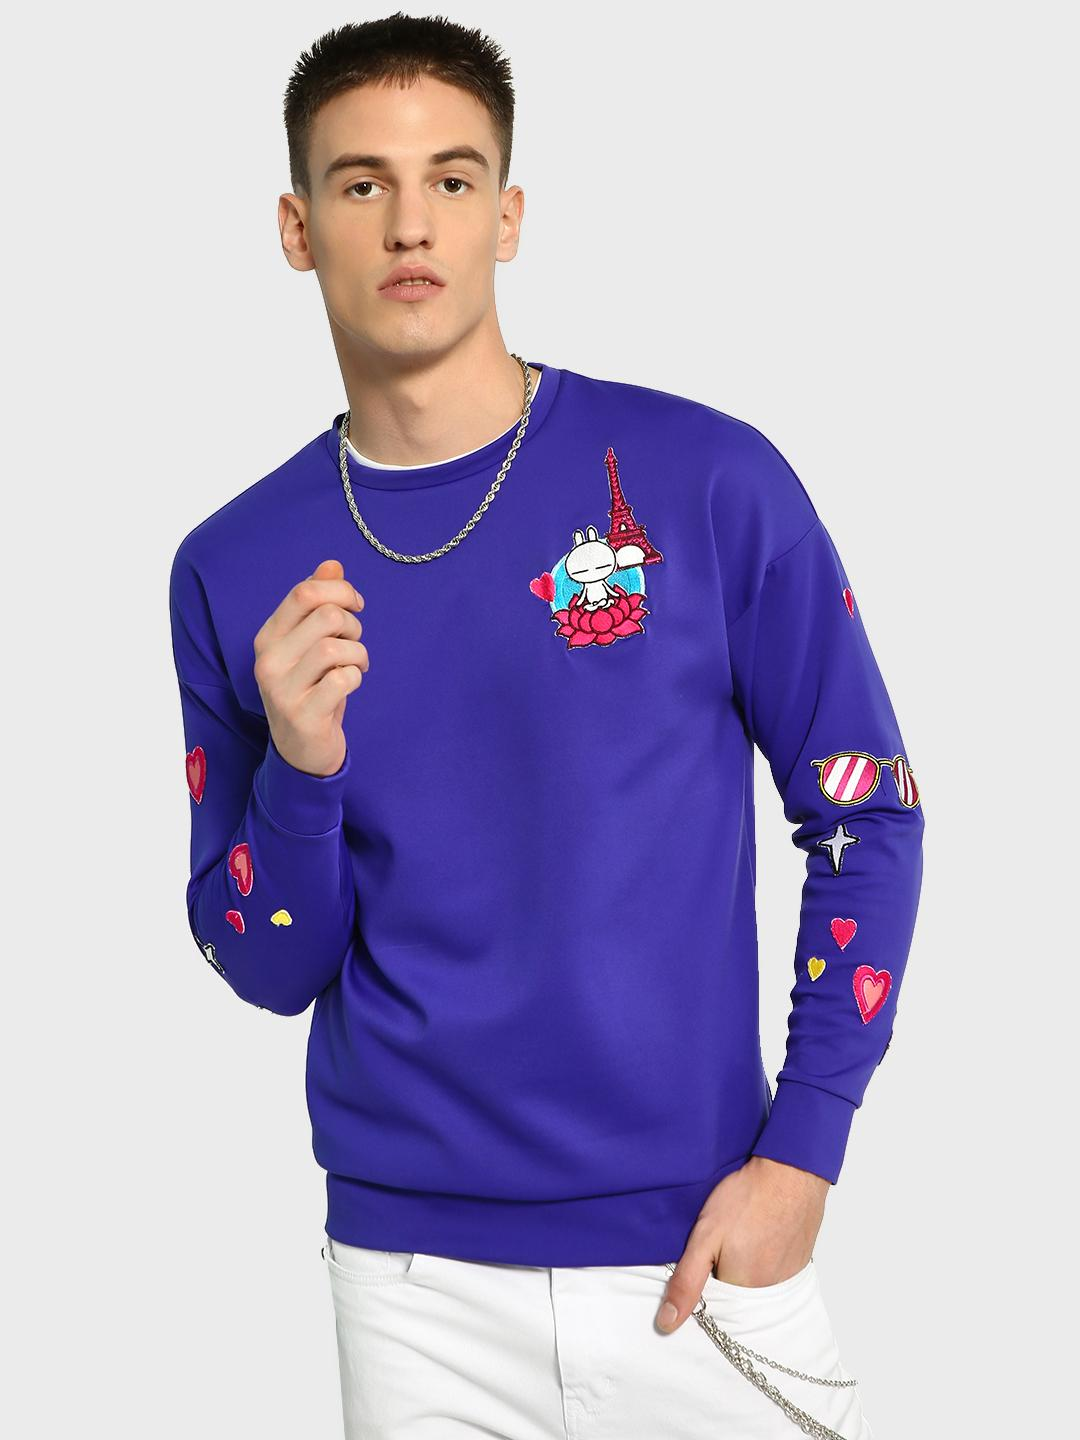 Manish Arora Paris X KOOVS Blue Tuzki Heart Badge Applique Sweatshirt 1